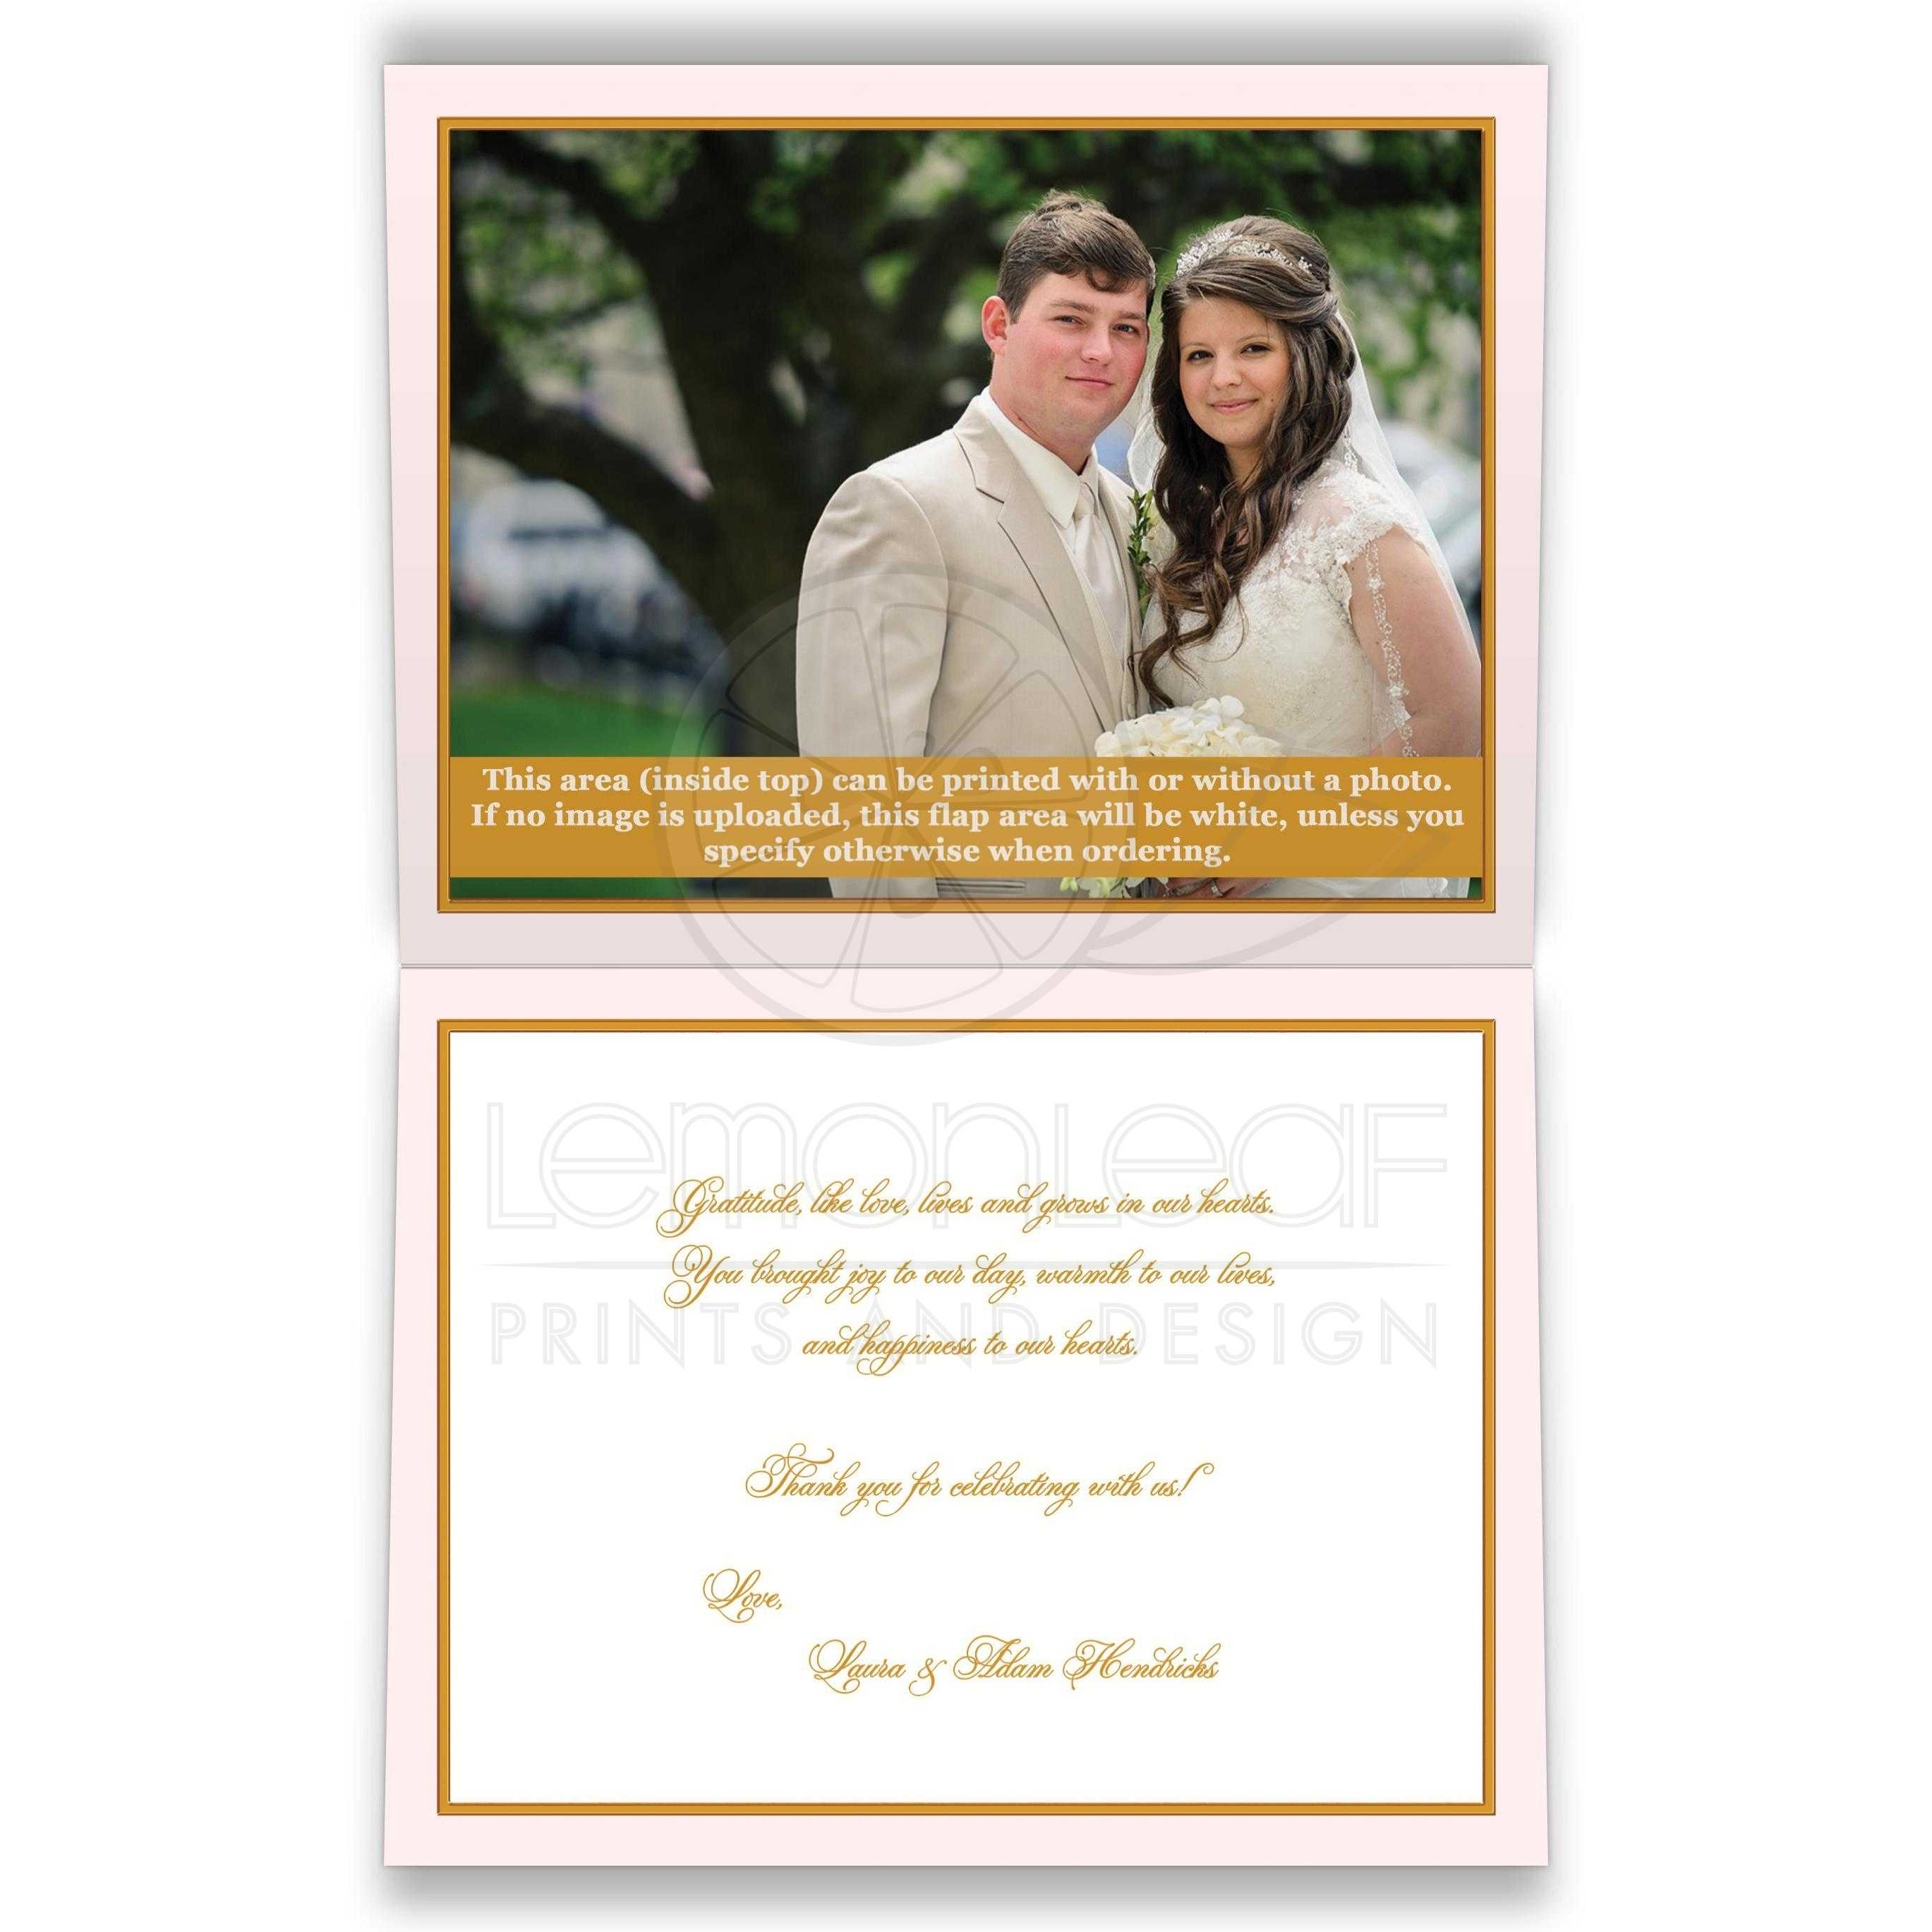 Genial 43829 Fedback Blush Pink Ivory G Floral Wedding Thank You Card A2lin Photo Thank You Cards Birthday Photo Thank You Cards Walmart cards Photo Thank You Cards